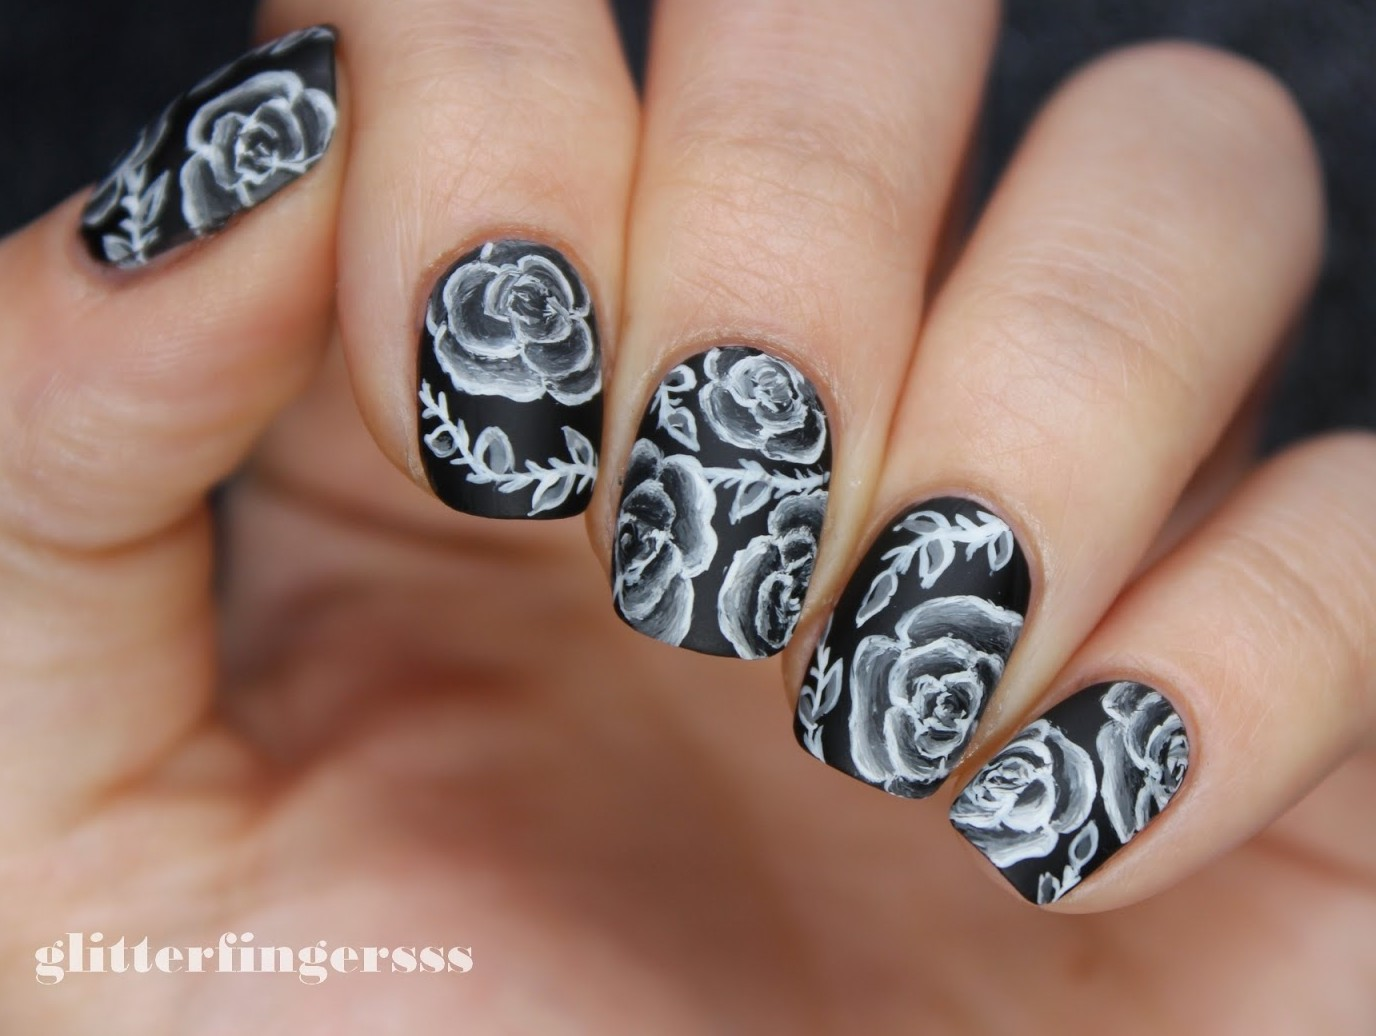 Nails of the Day: Chalkboard roses